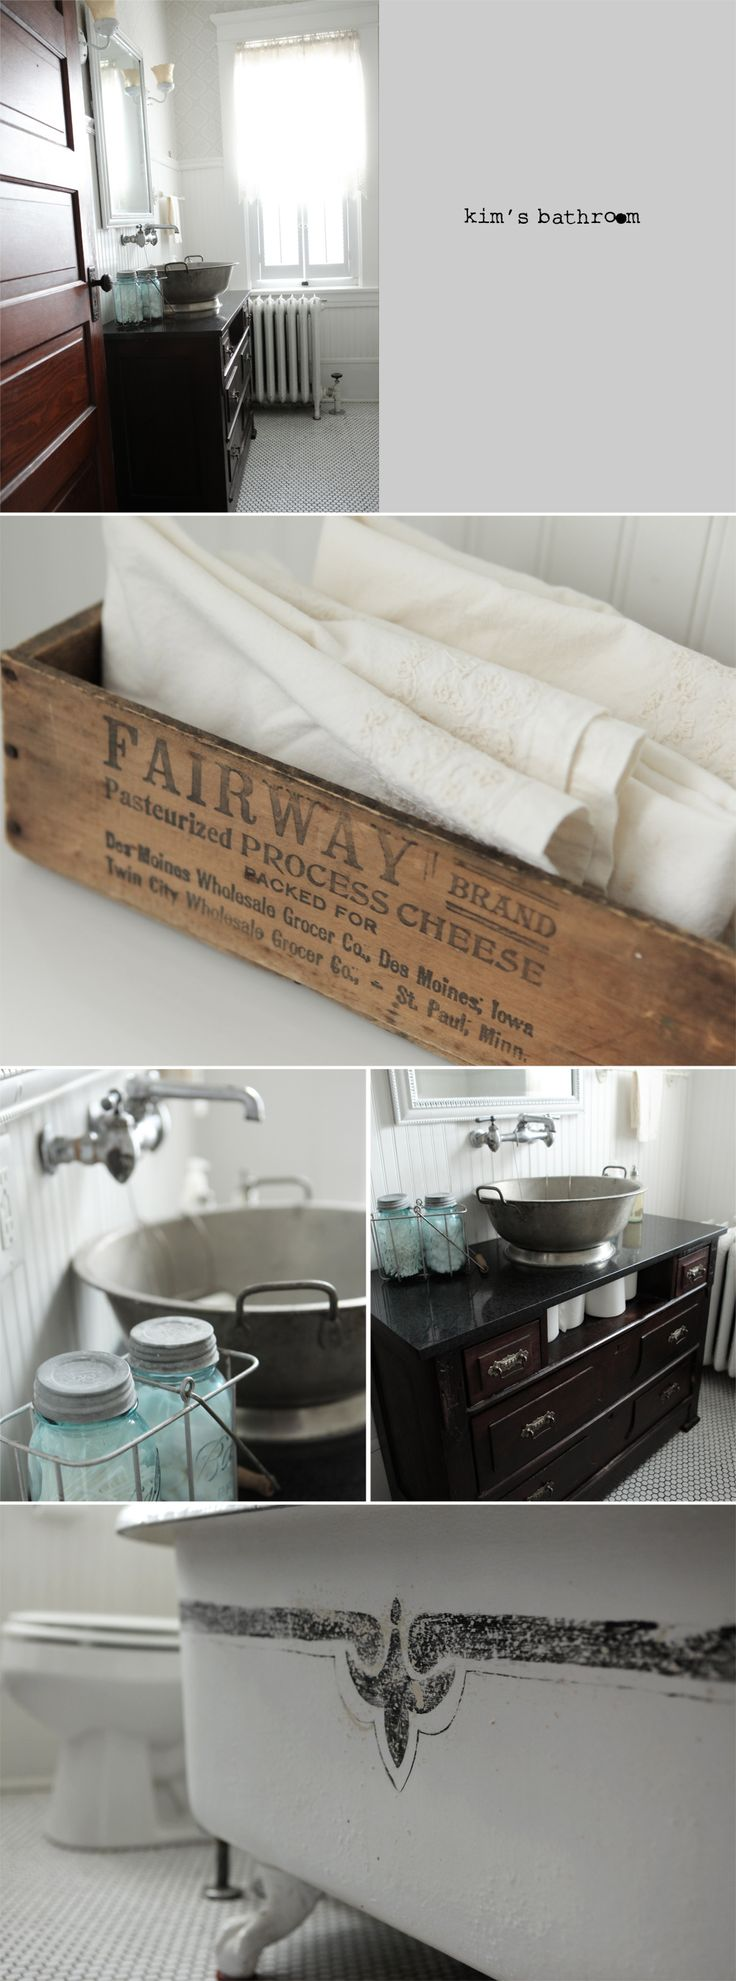 108 best Home Decor - BATHROOMS images on Pinterest | Bathroom ...